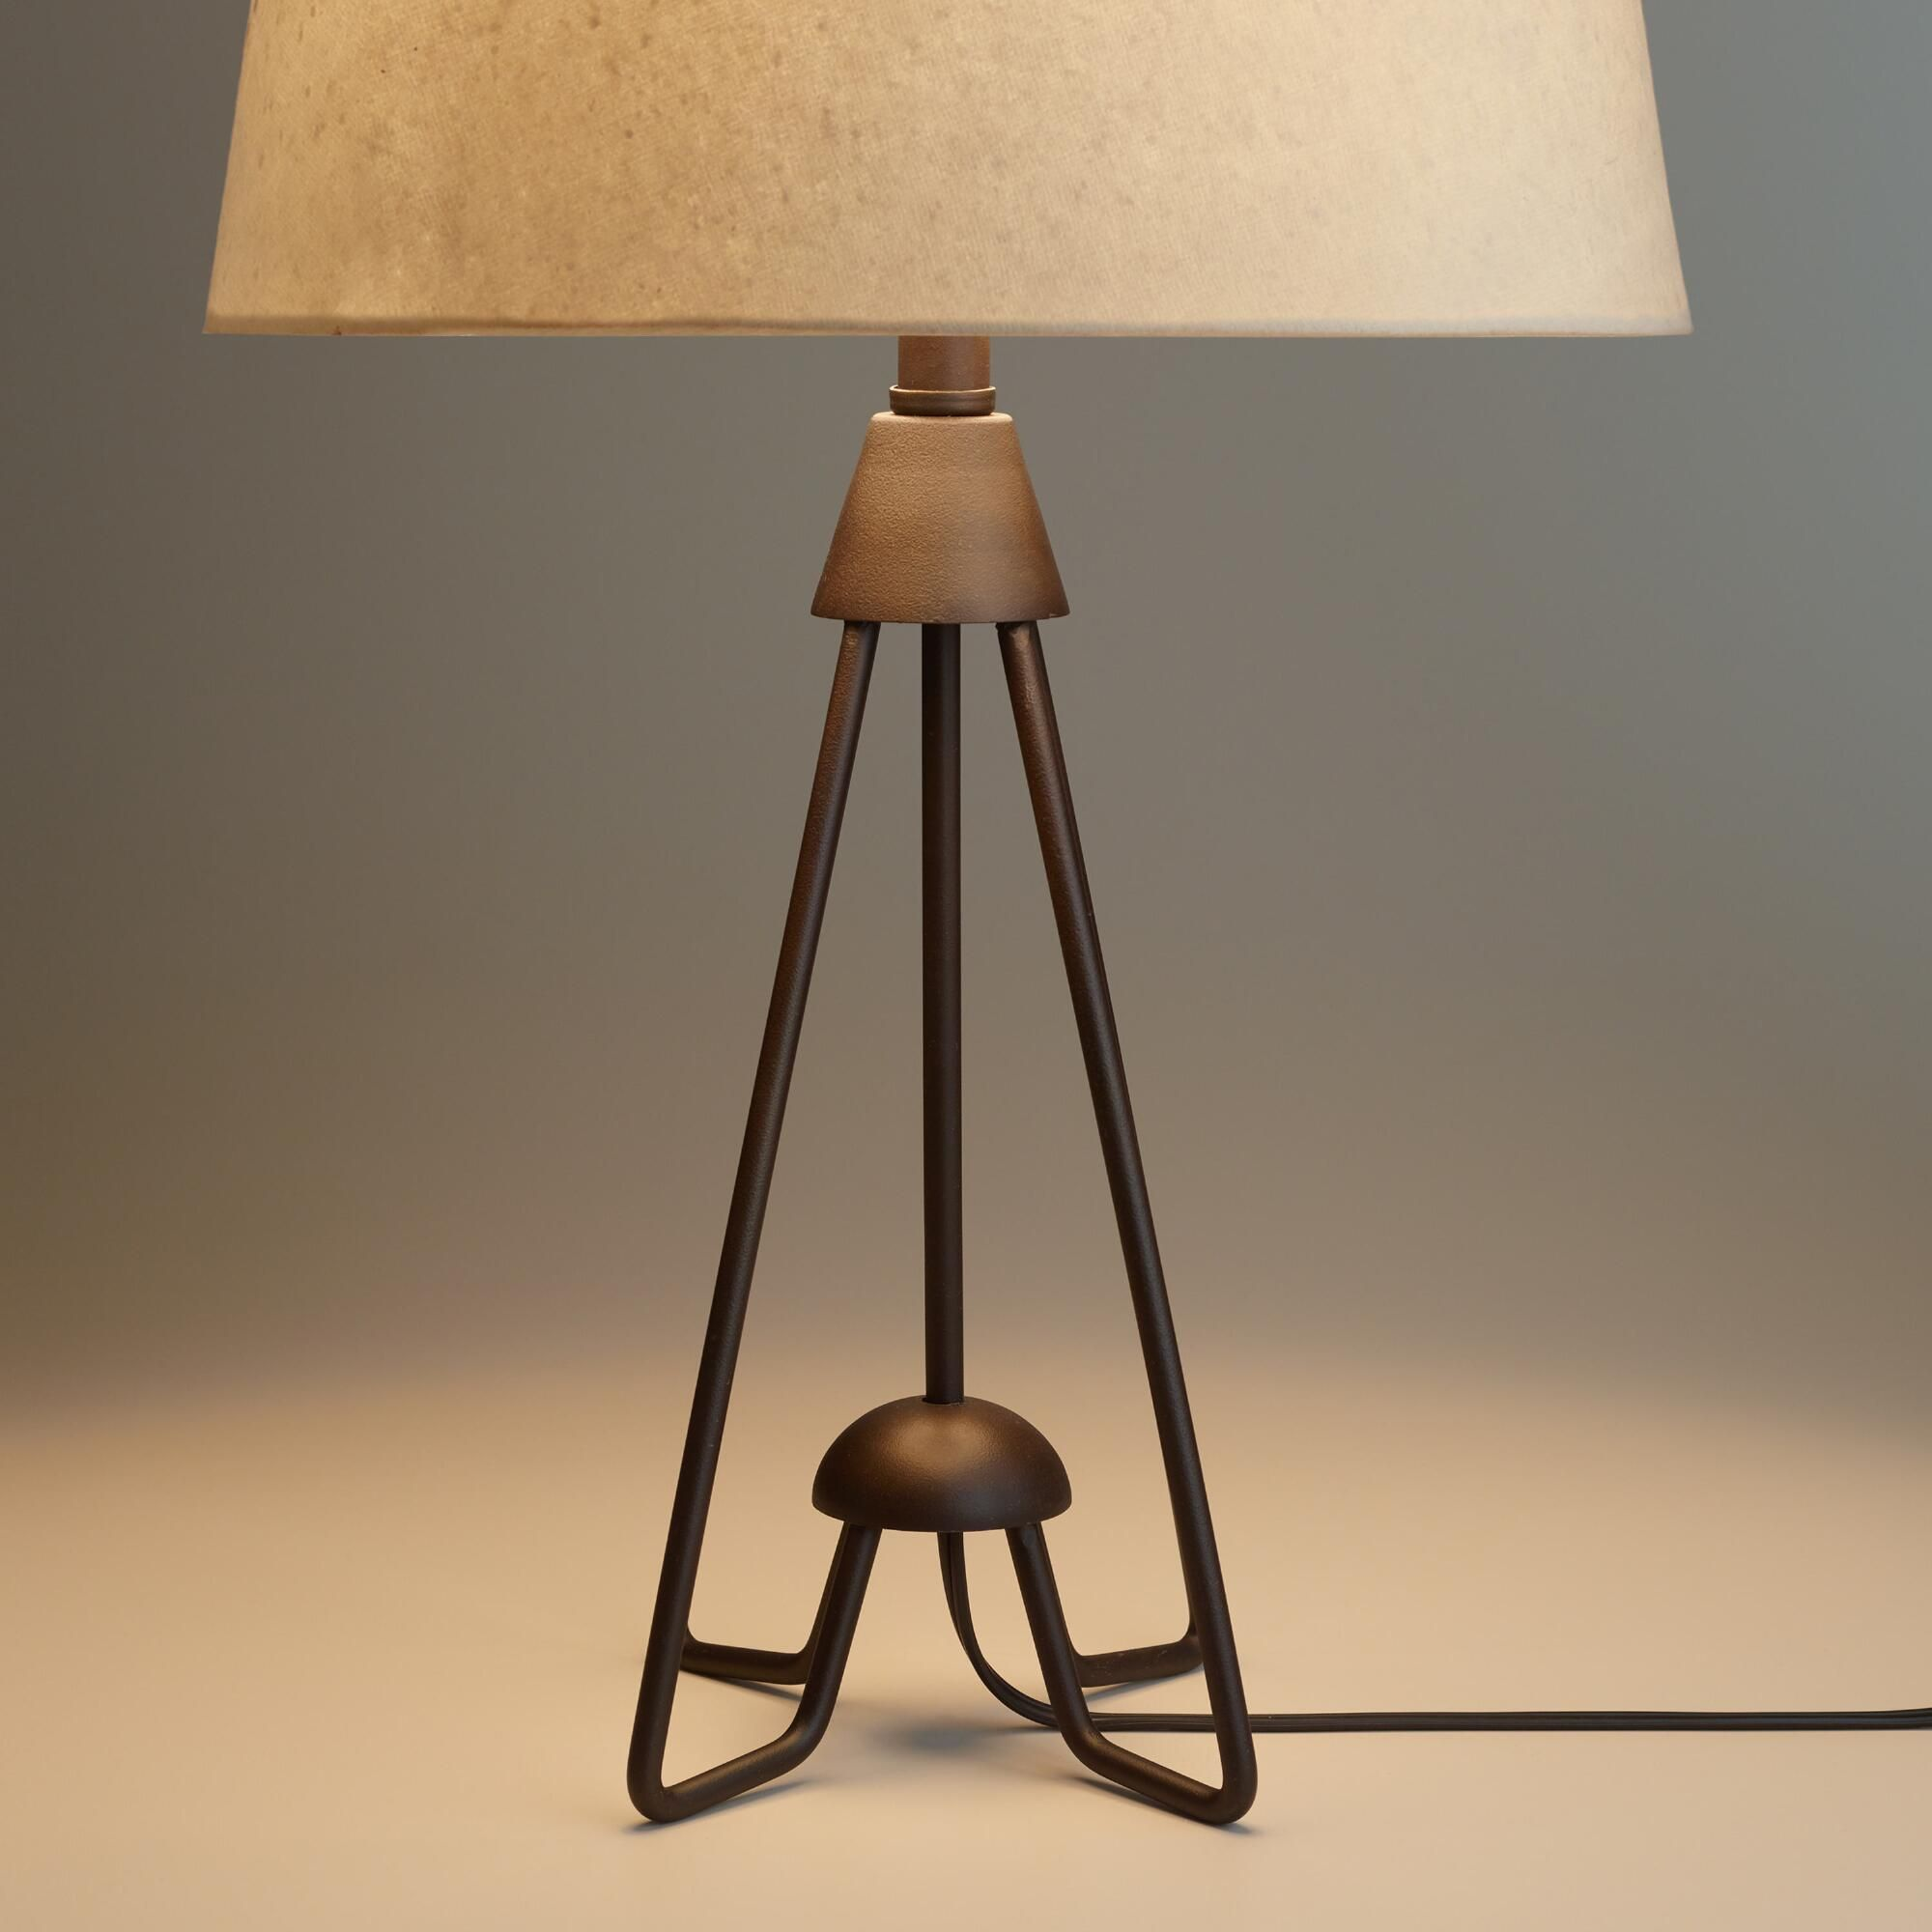 Bronze and silver table lamp ambience accent lamp table lamps lamps - Crafted Of Iron With A Black Finish And An Open Design Our Exclusive Table Lamp